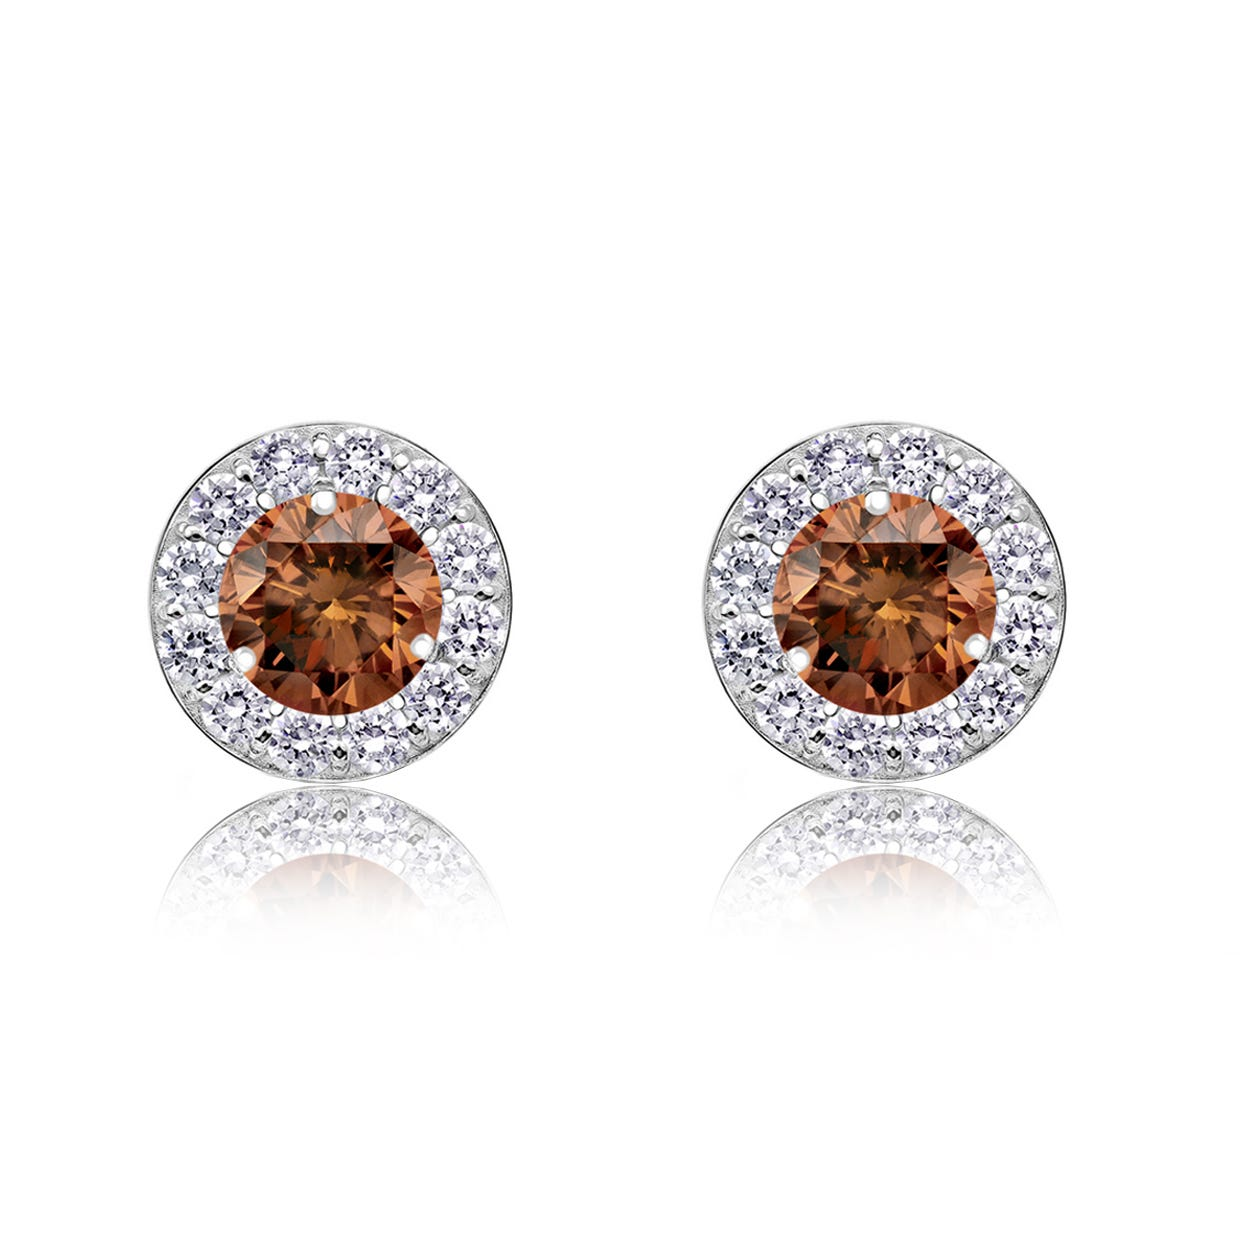 Champagne & White ½ct. Diamond Halo Stud Earrings in 14k White Gold